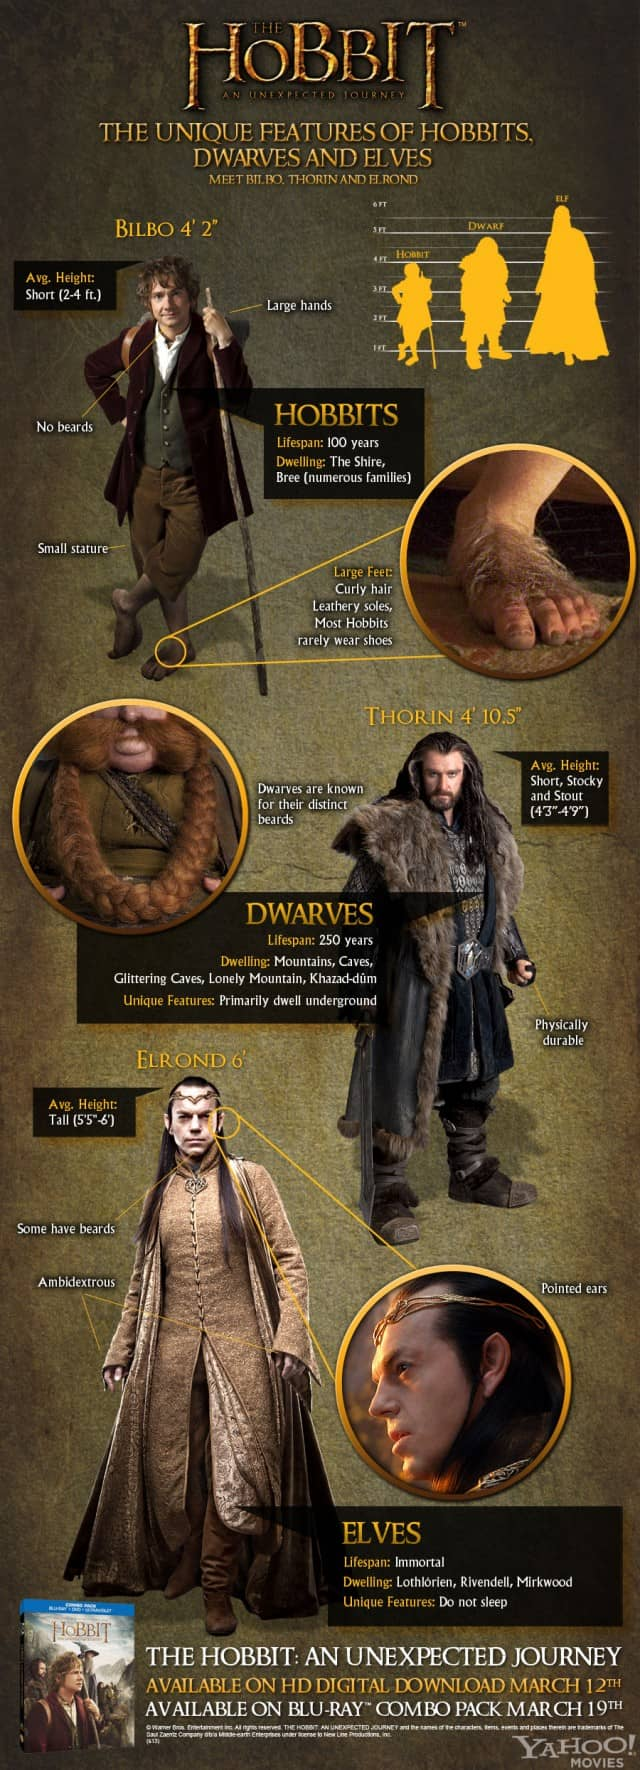 hobbit-infographic-full900-jpg_223713-640x1770